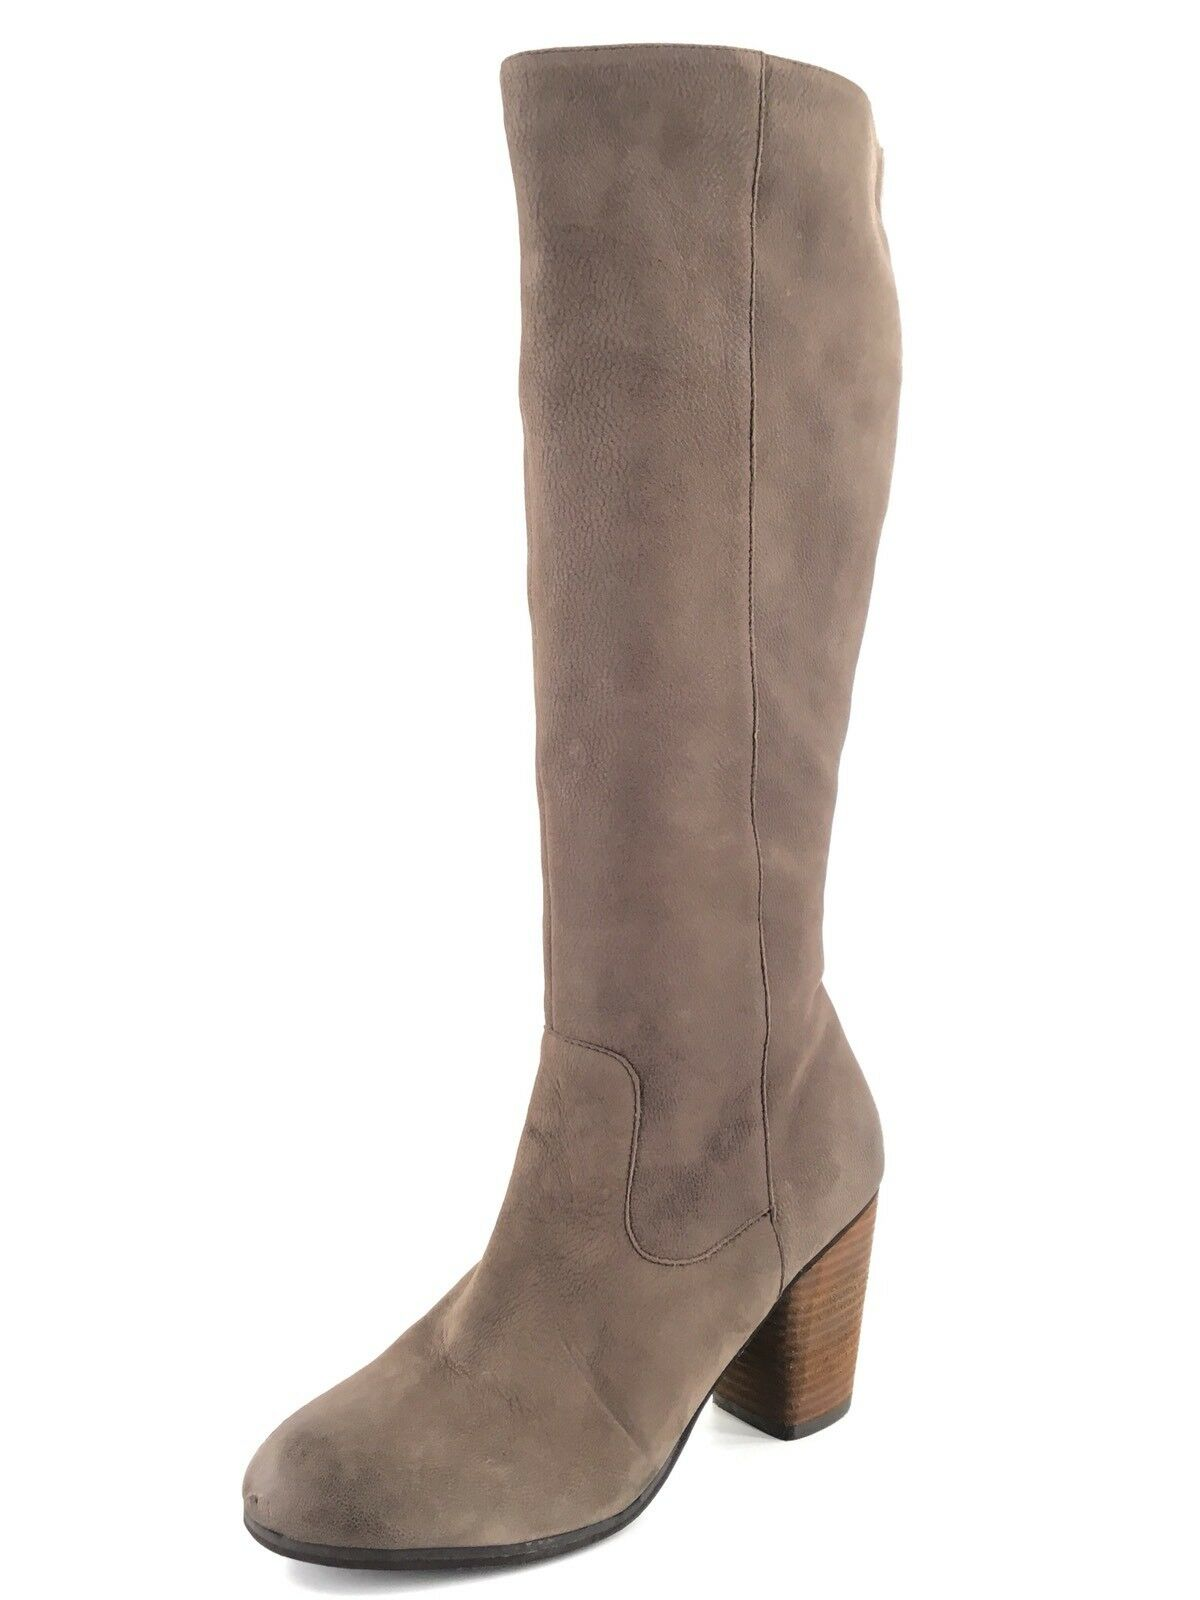 BP Transit Taupe Leather Knee High Fashion Boots Womens Size 8 M*